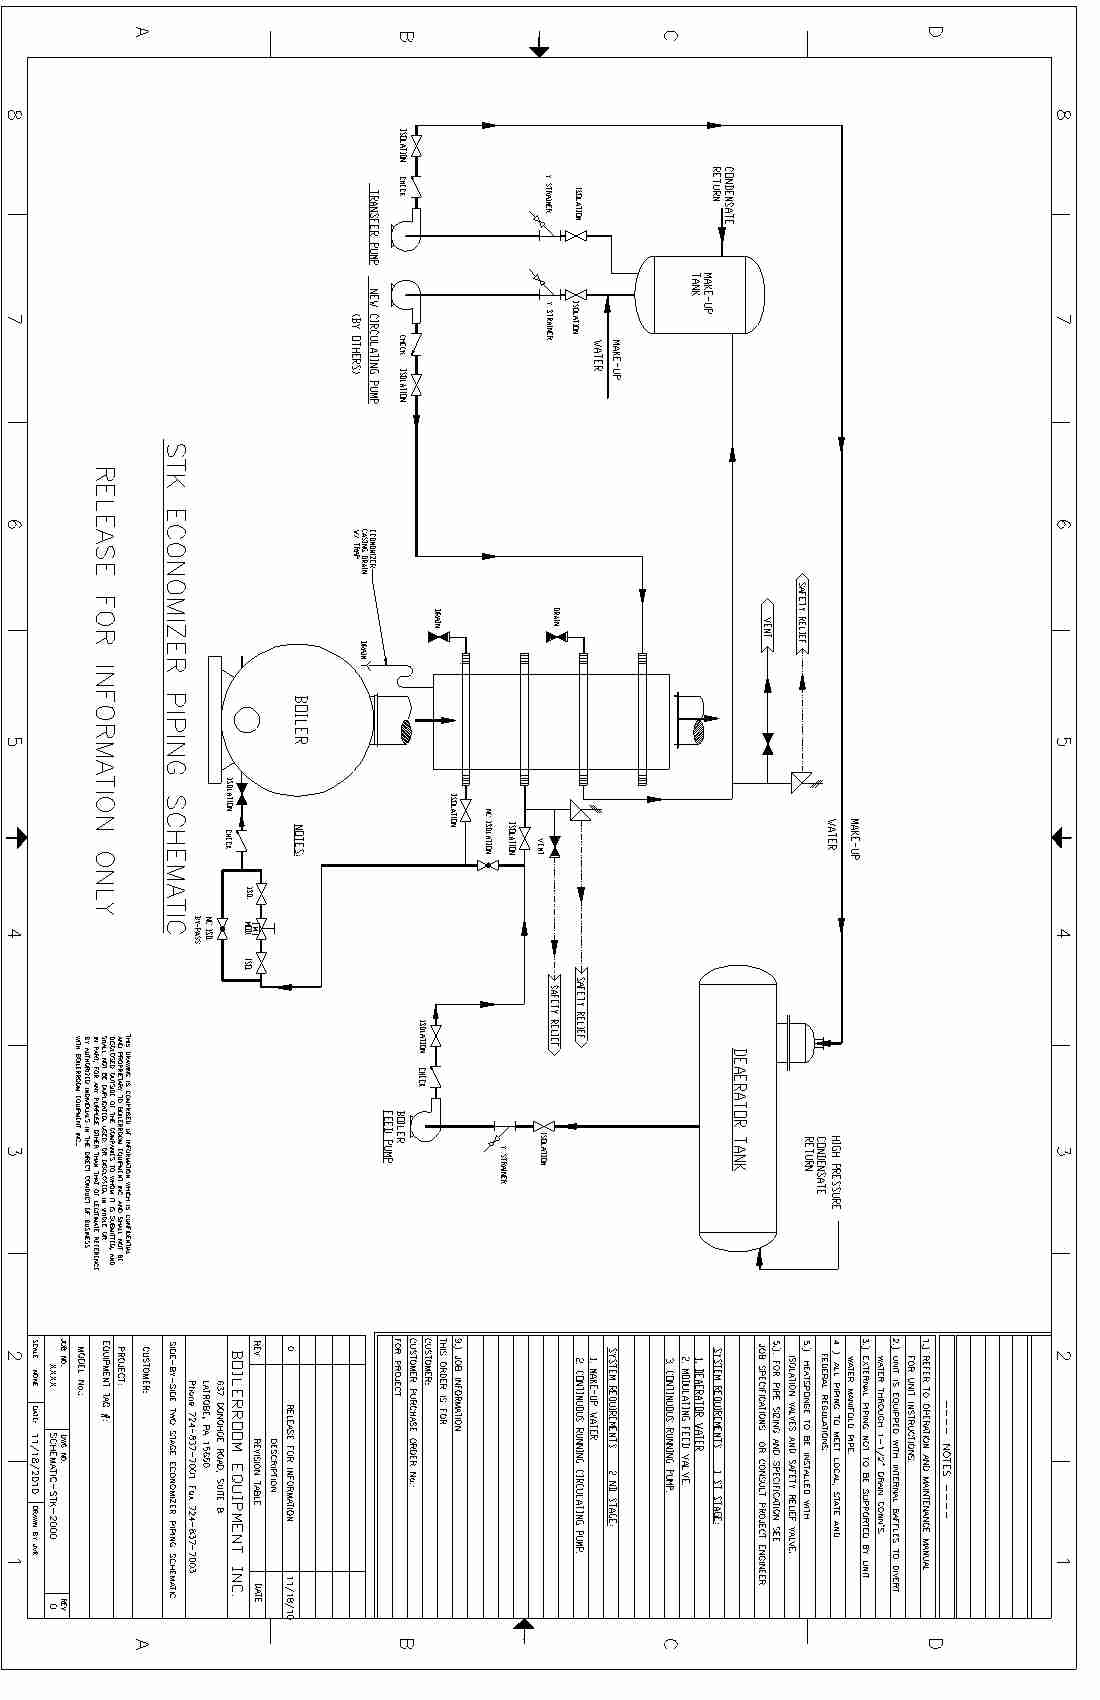 Condensing Boiler: Condensing Boiler Piping Schematic